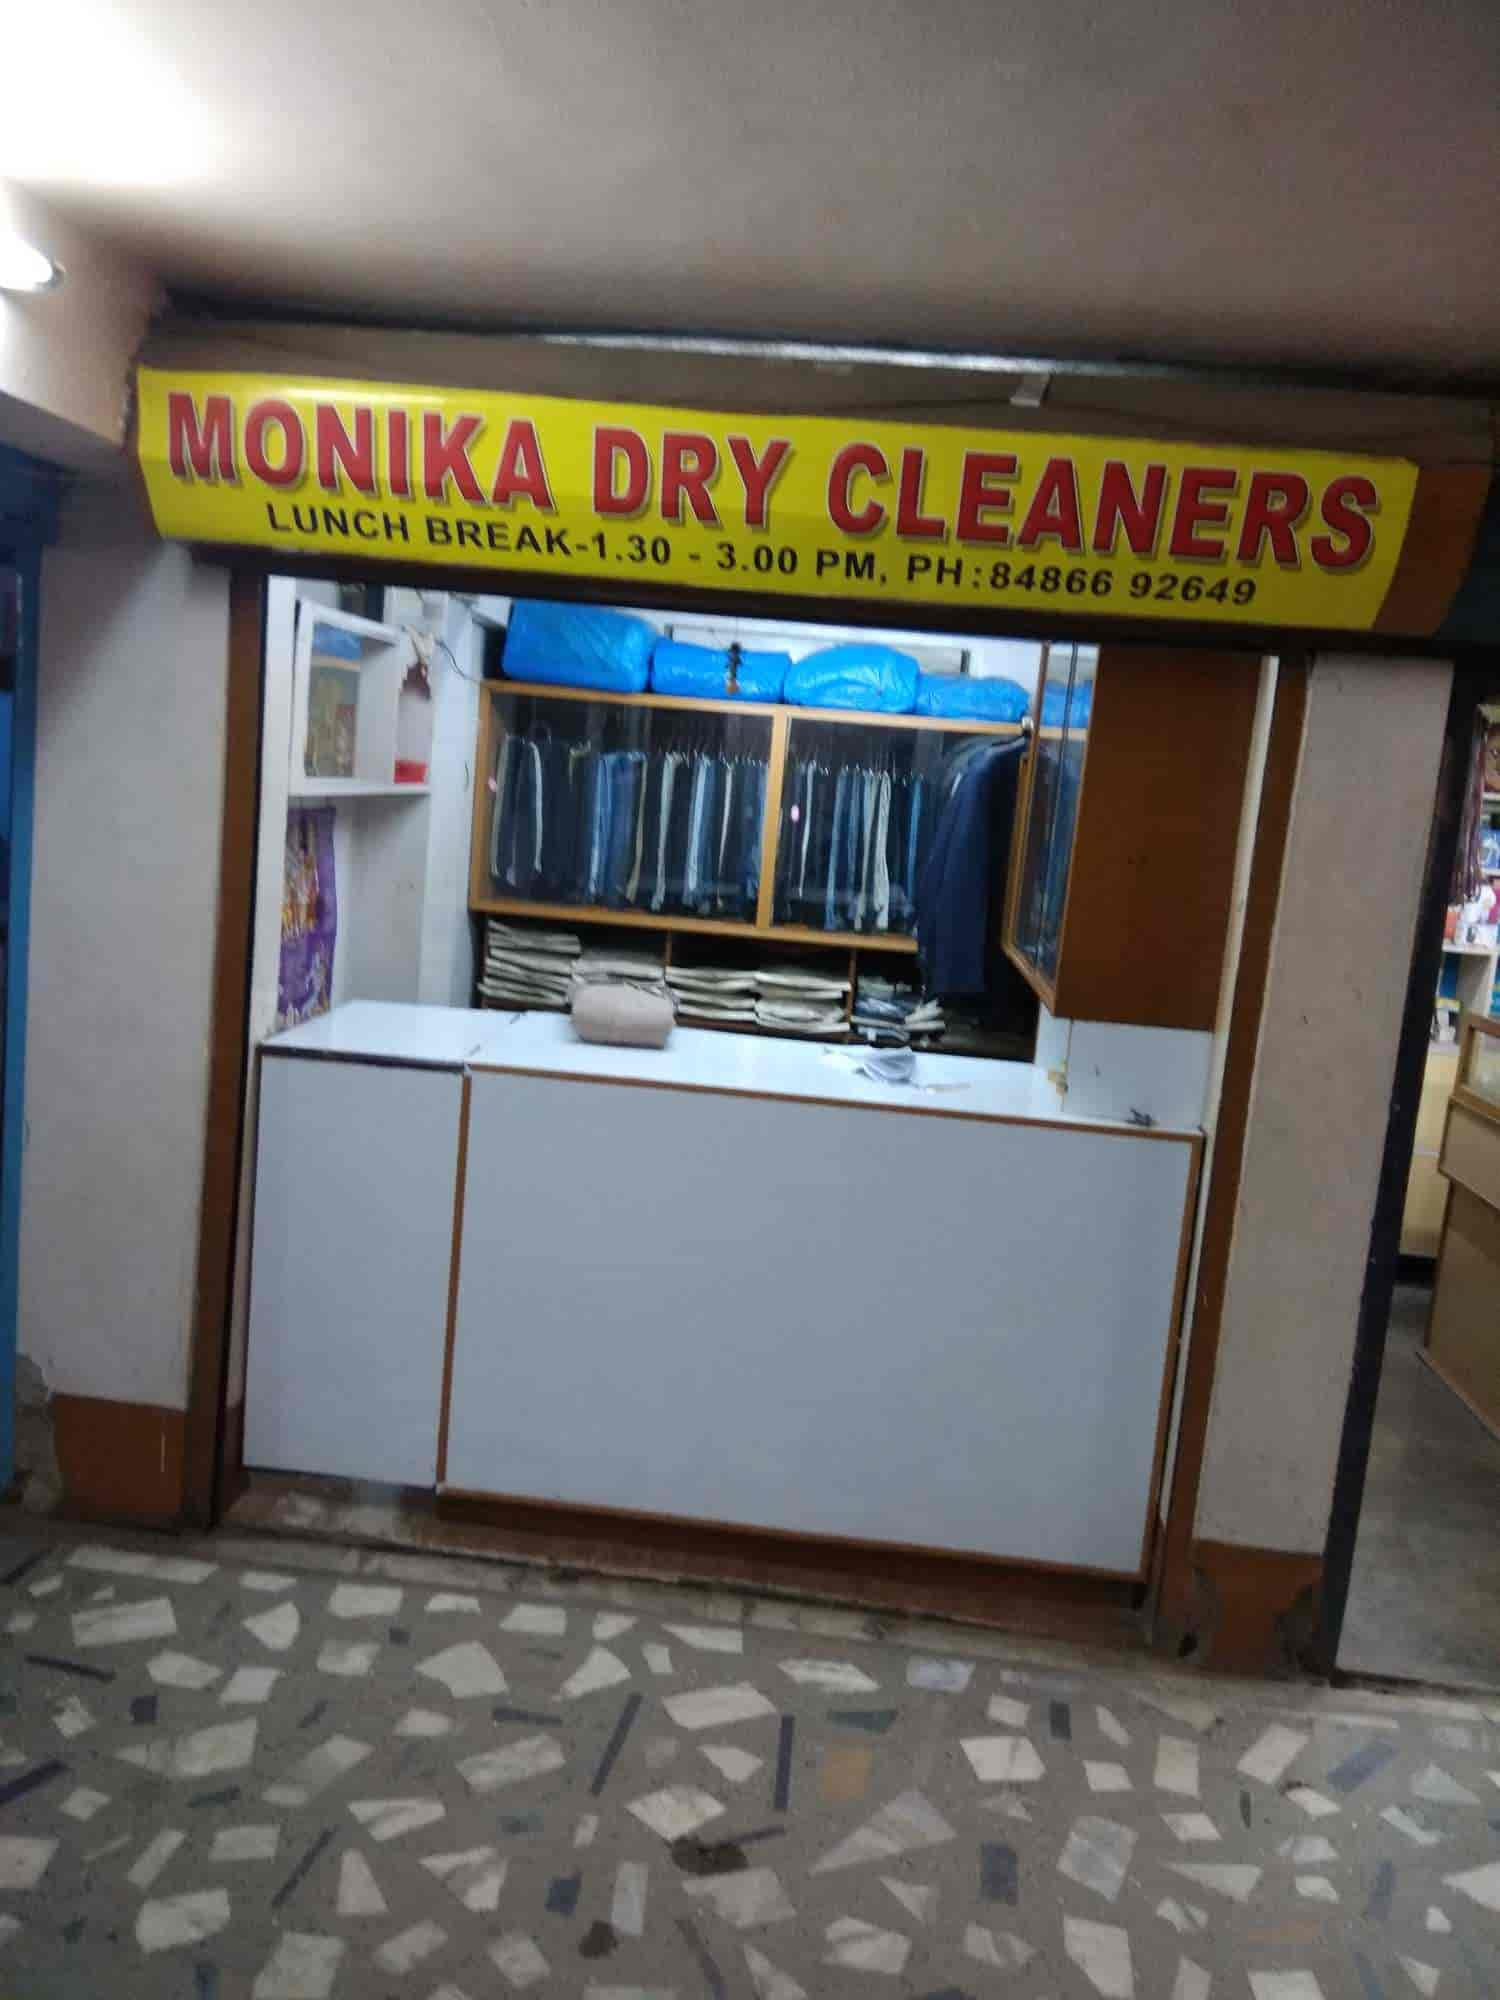 Monika Dry Cleaners Photos, Paltanbazar, Guwahati- Pictures & Images